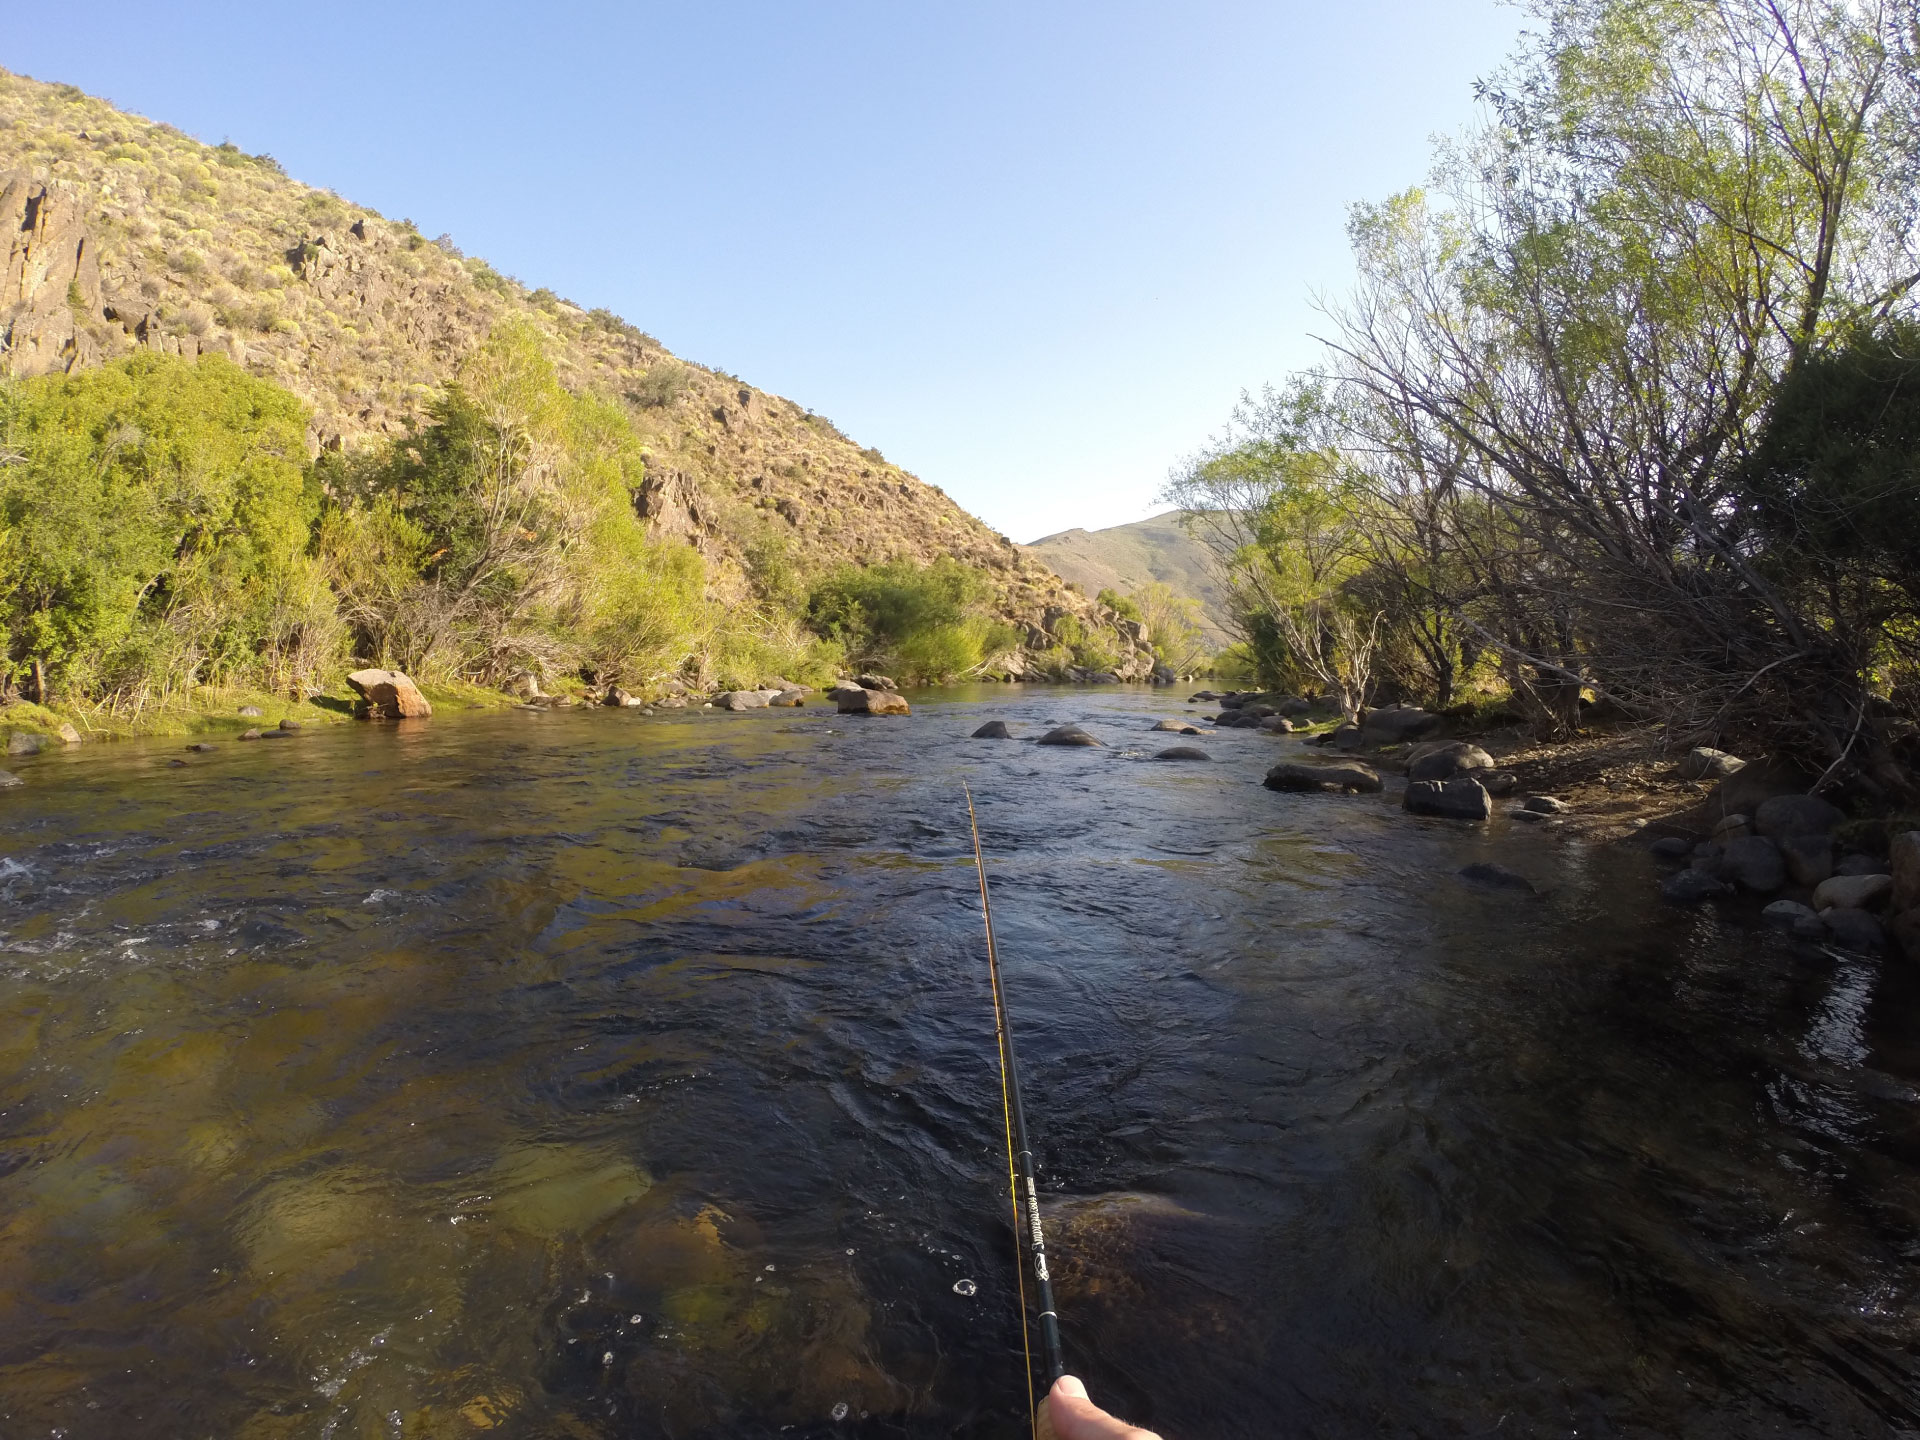 FLY FISHING IN NAHUEL MAPI